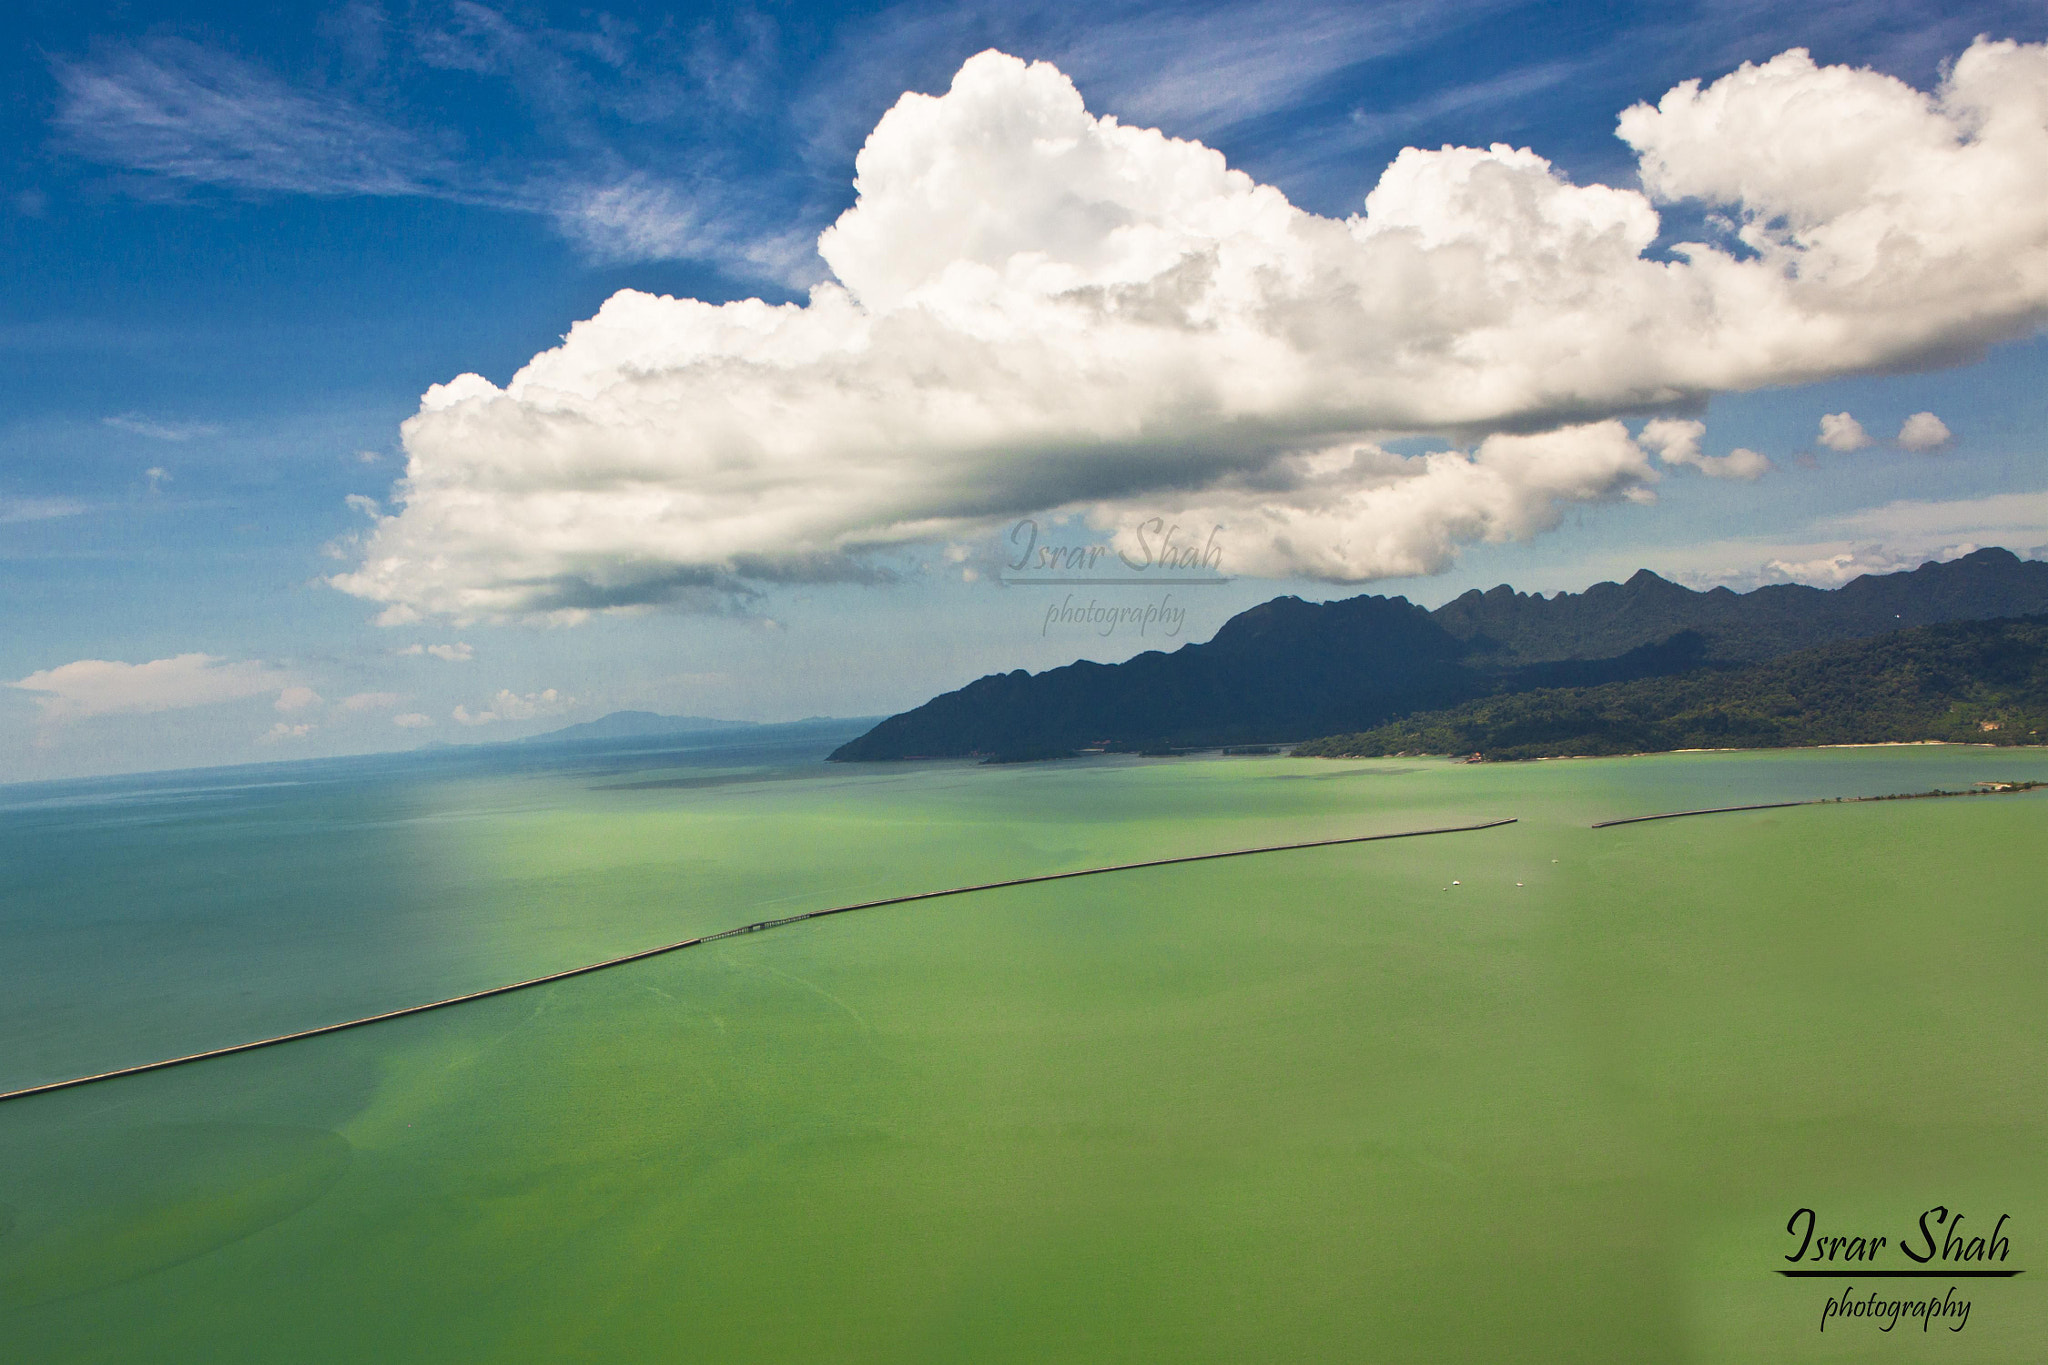 Photograph Langkawi by Israr Shah on 500px